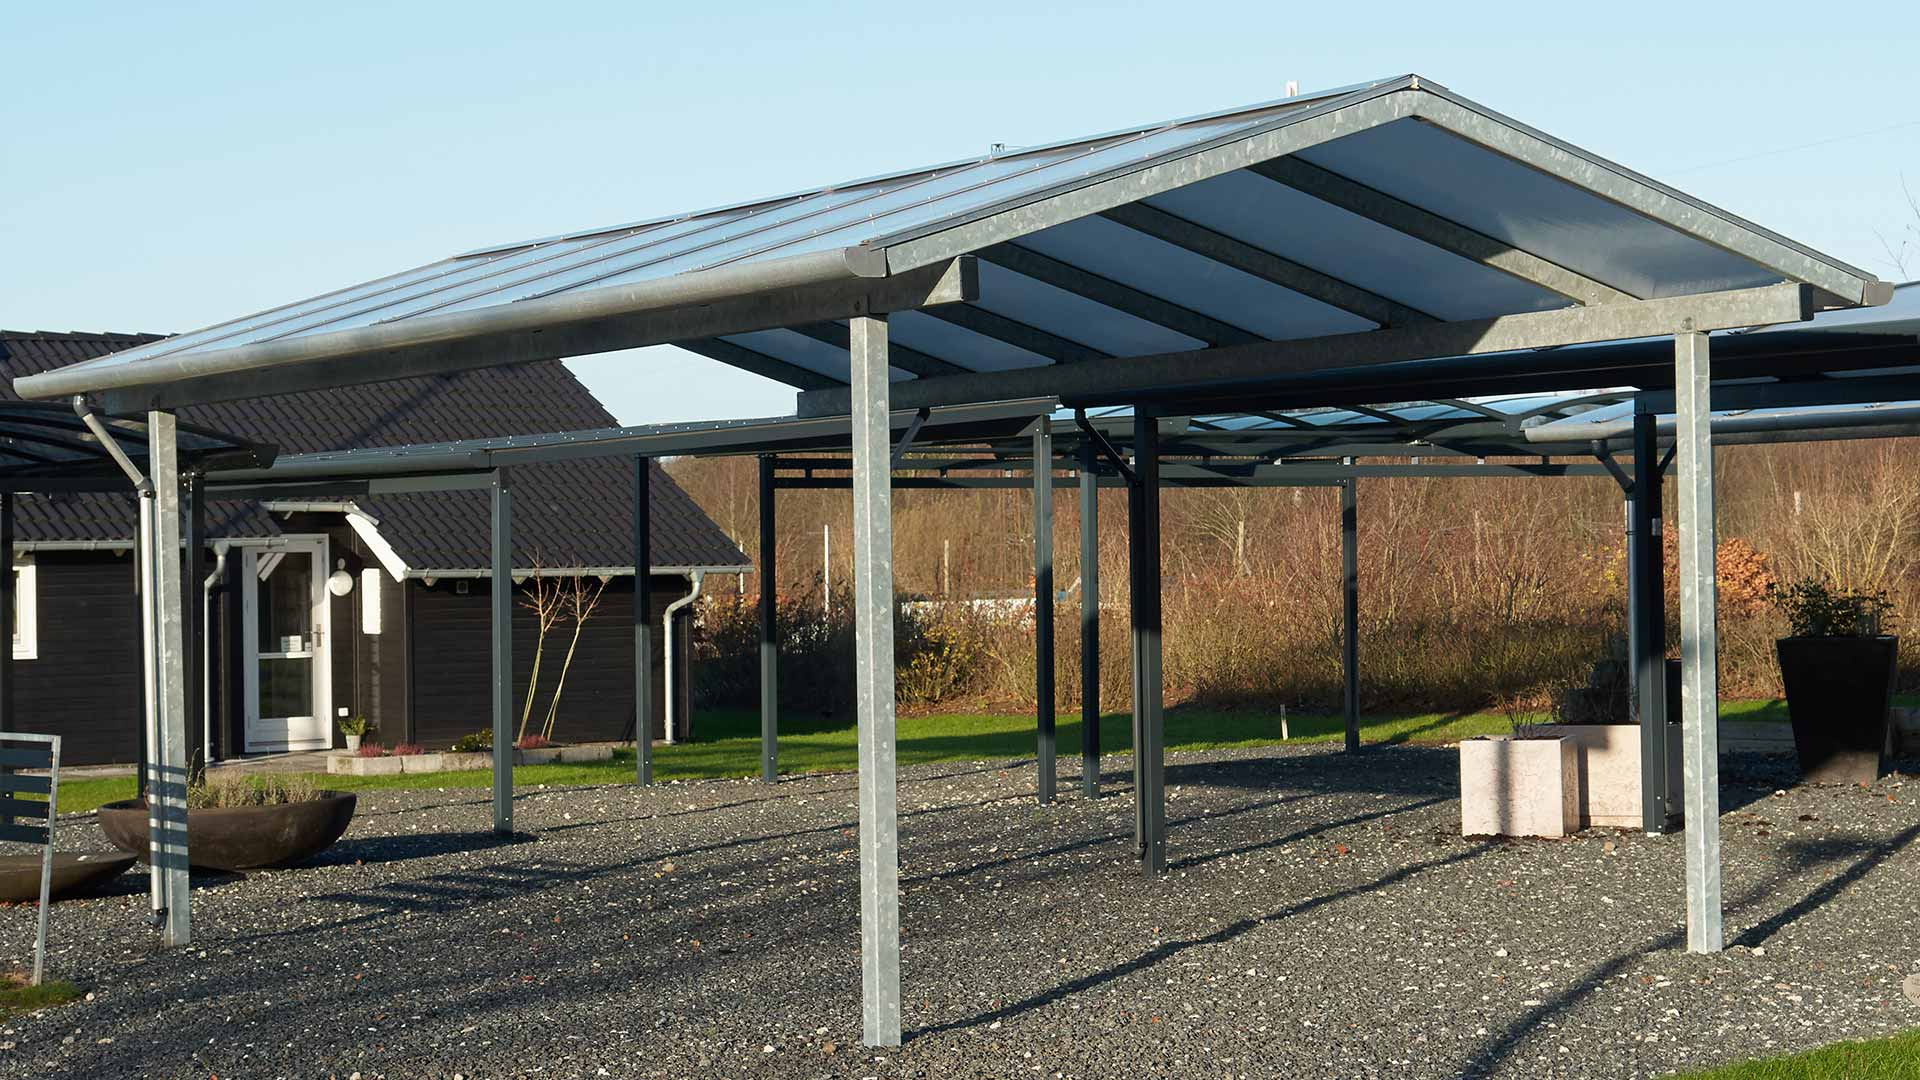 Why Carports Are a Cost-Effective Way to Protect Cars, Boats, & More